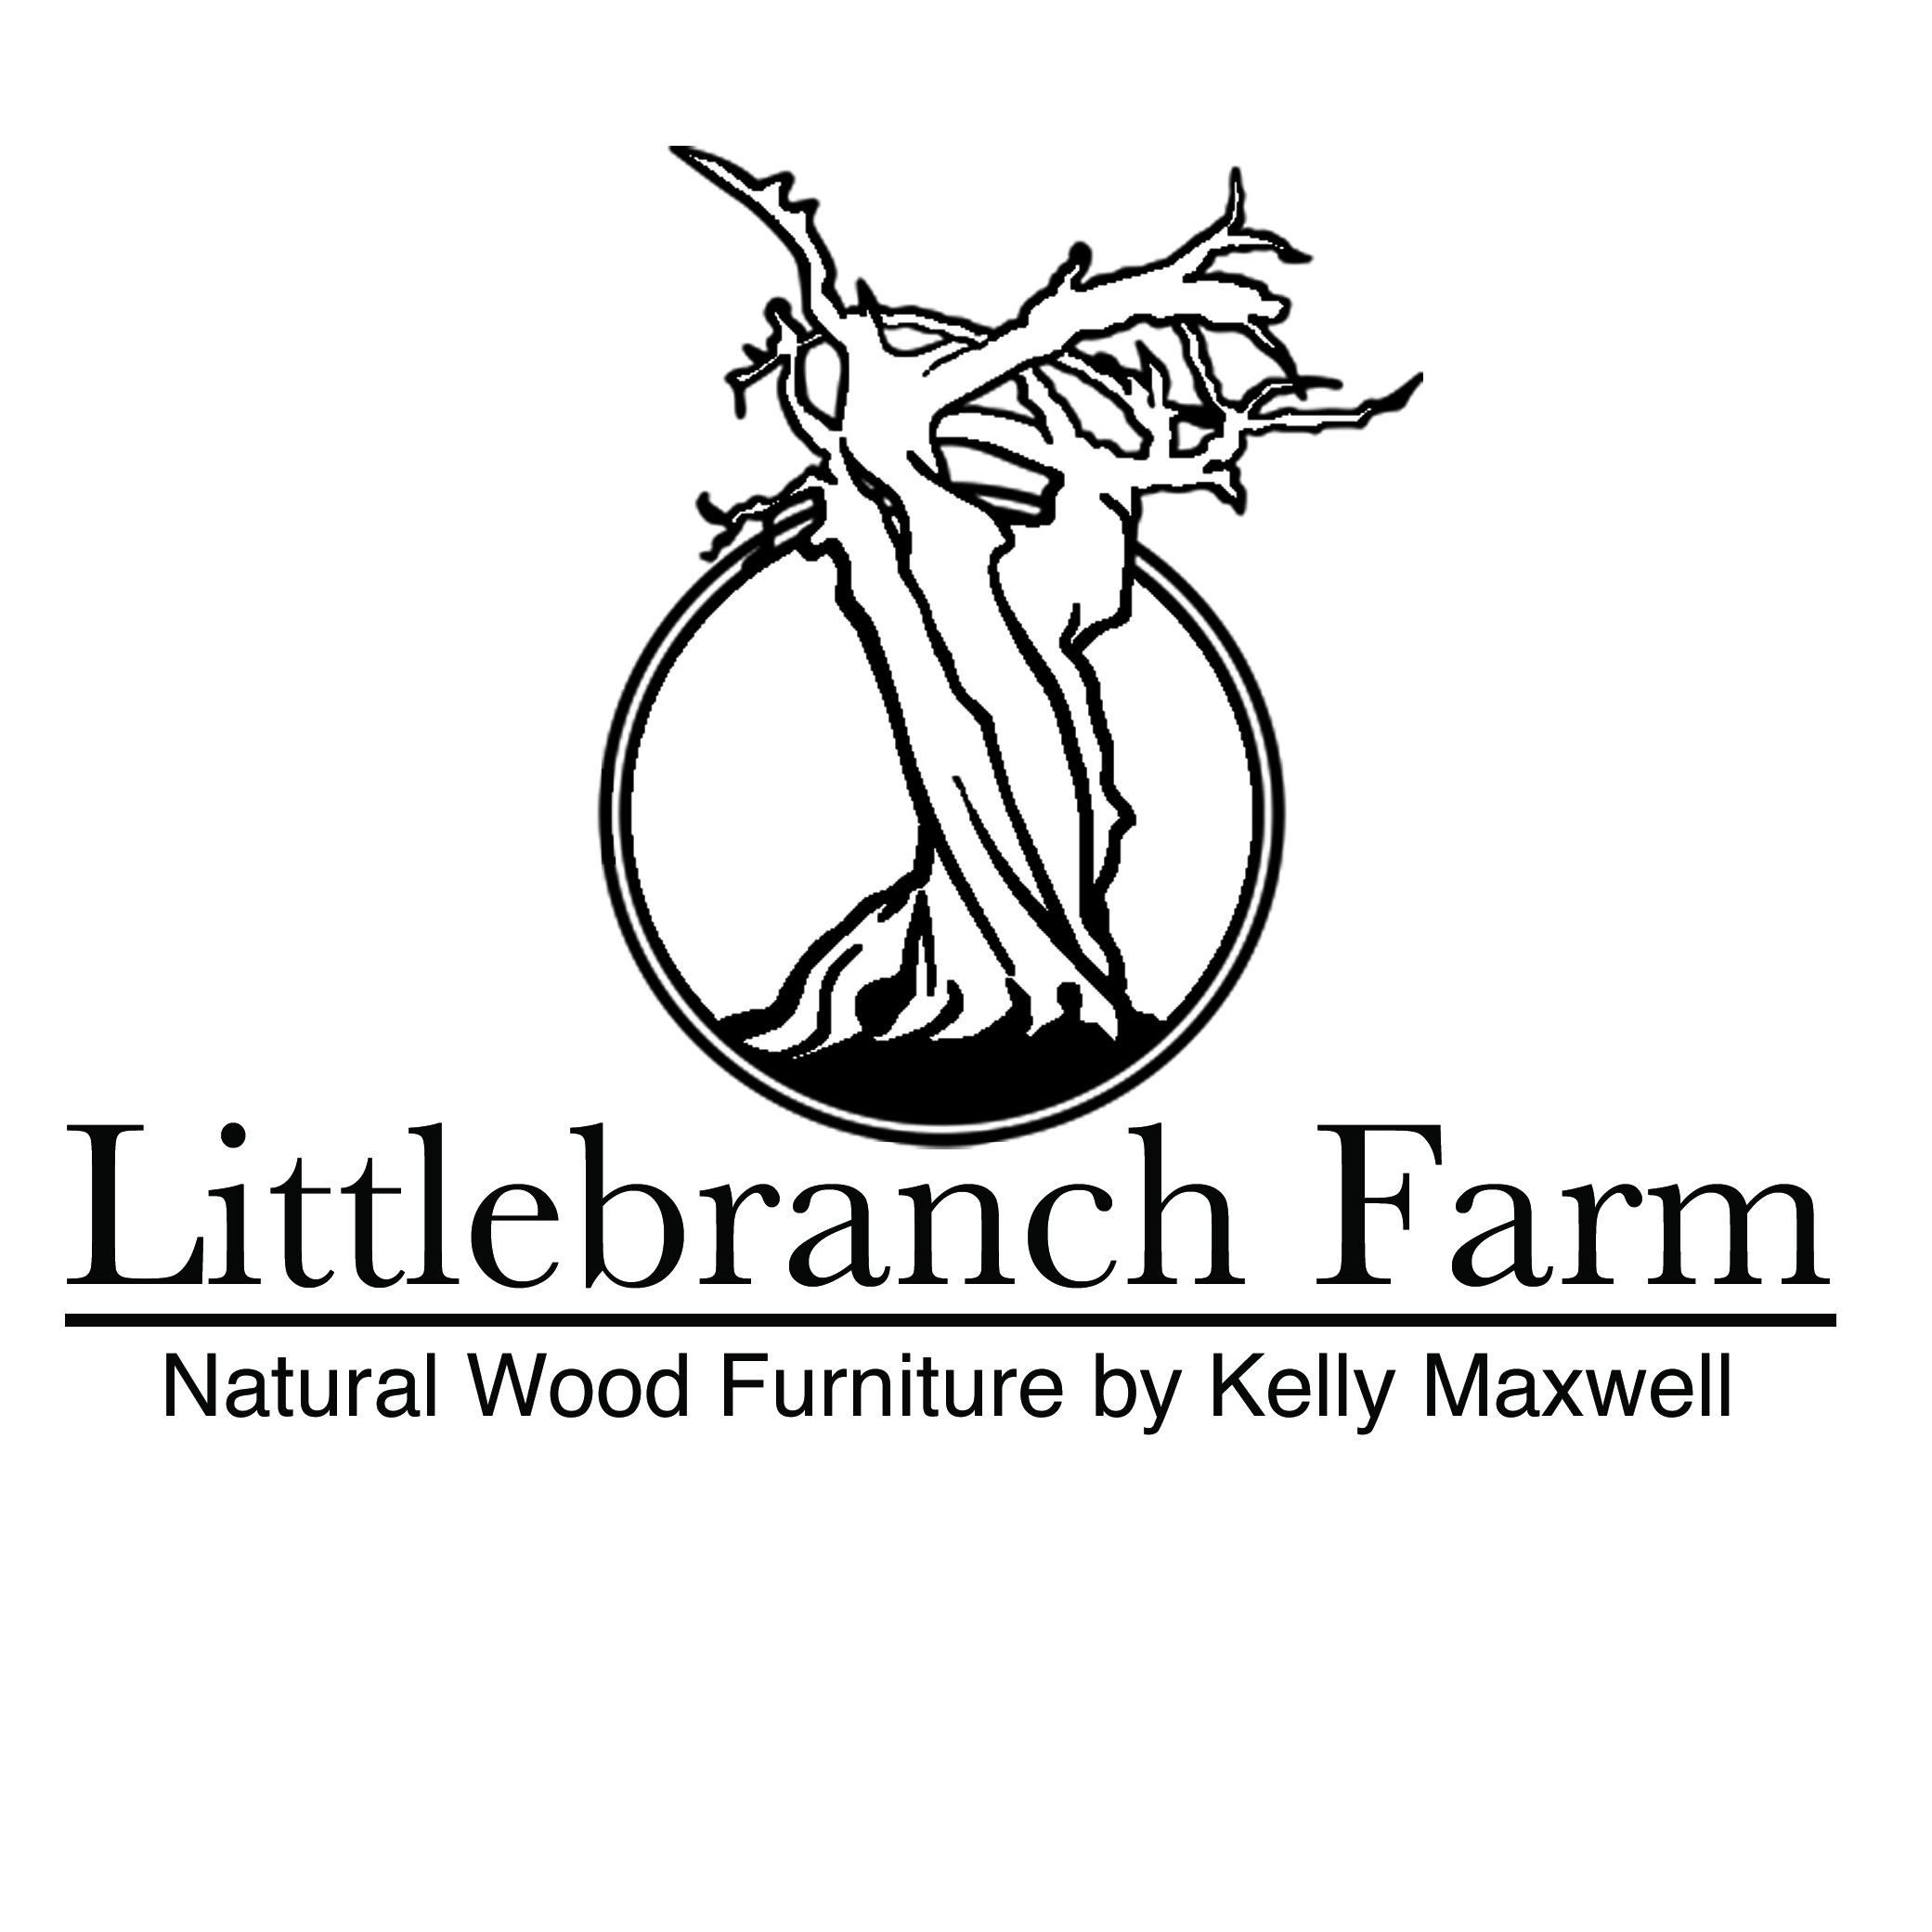 Littlebranch Farm